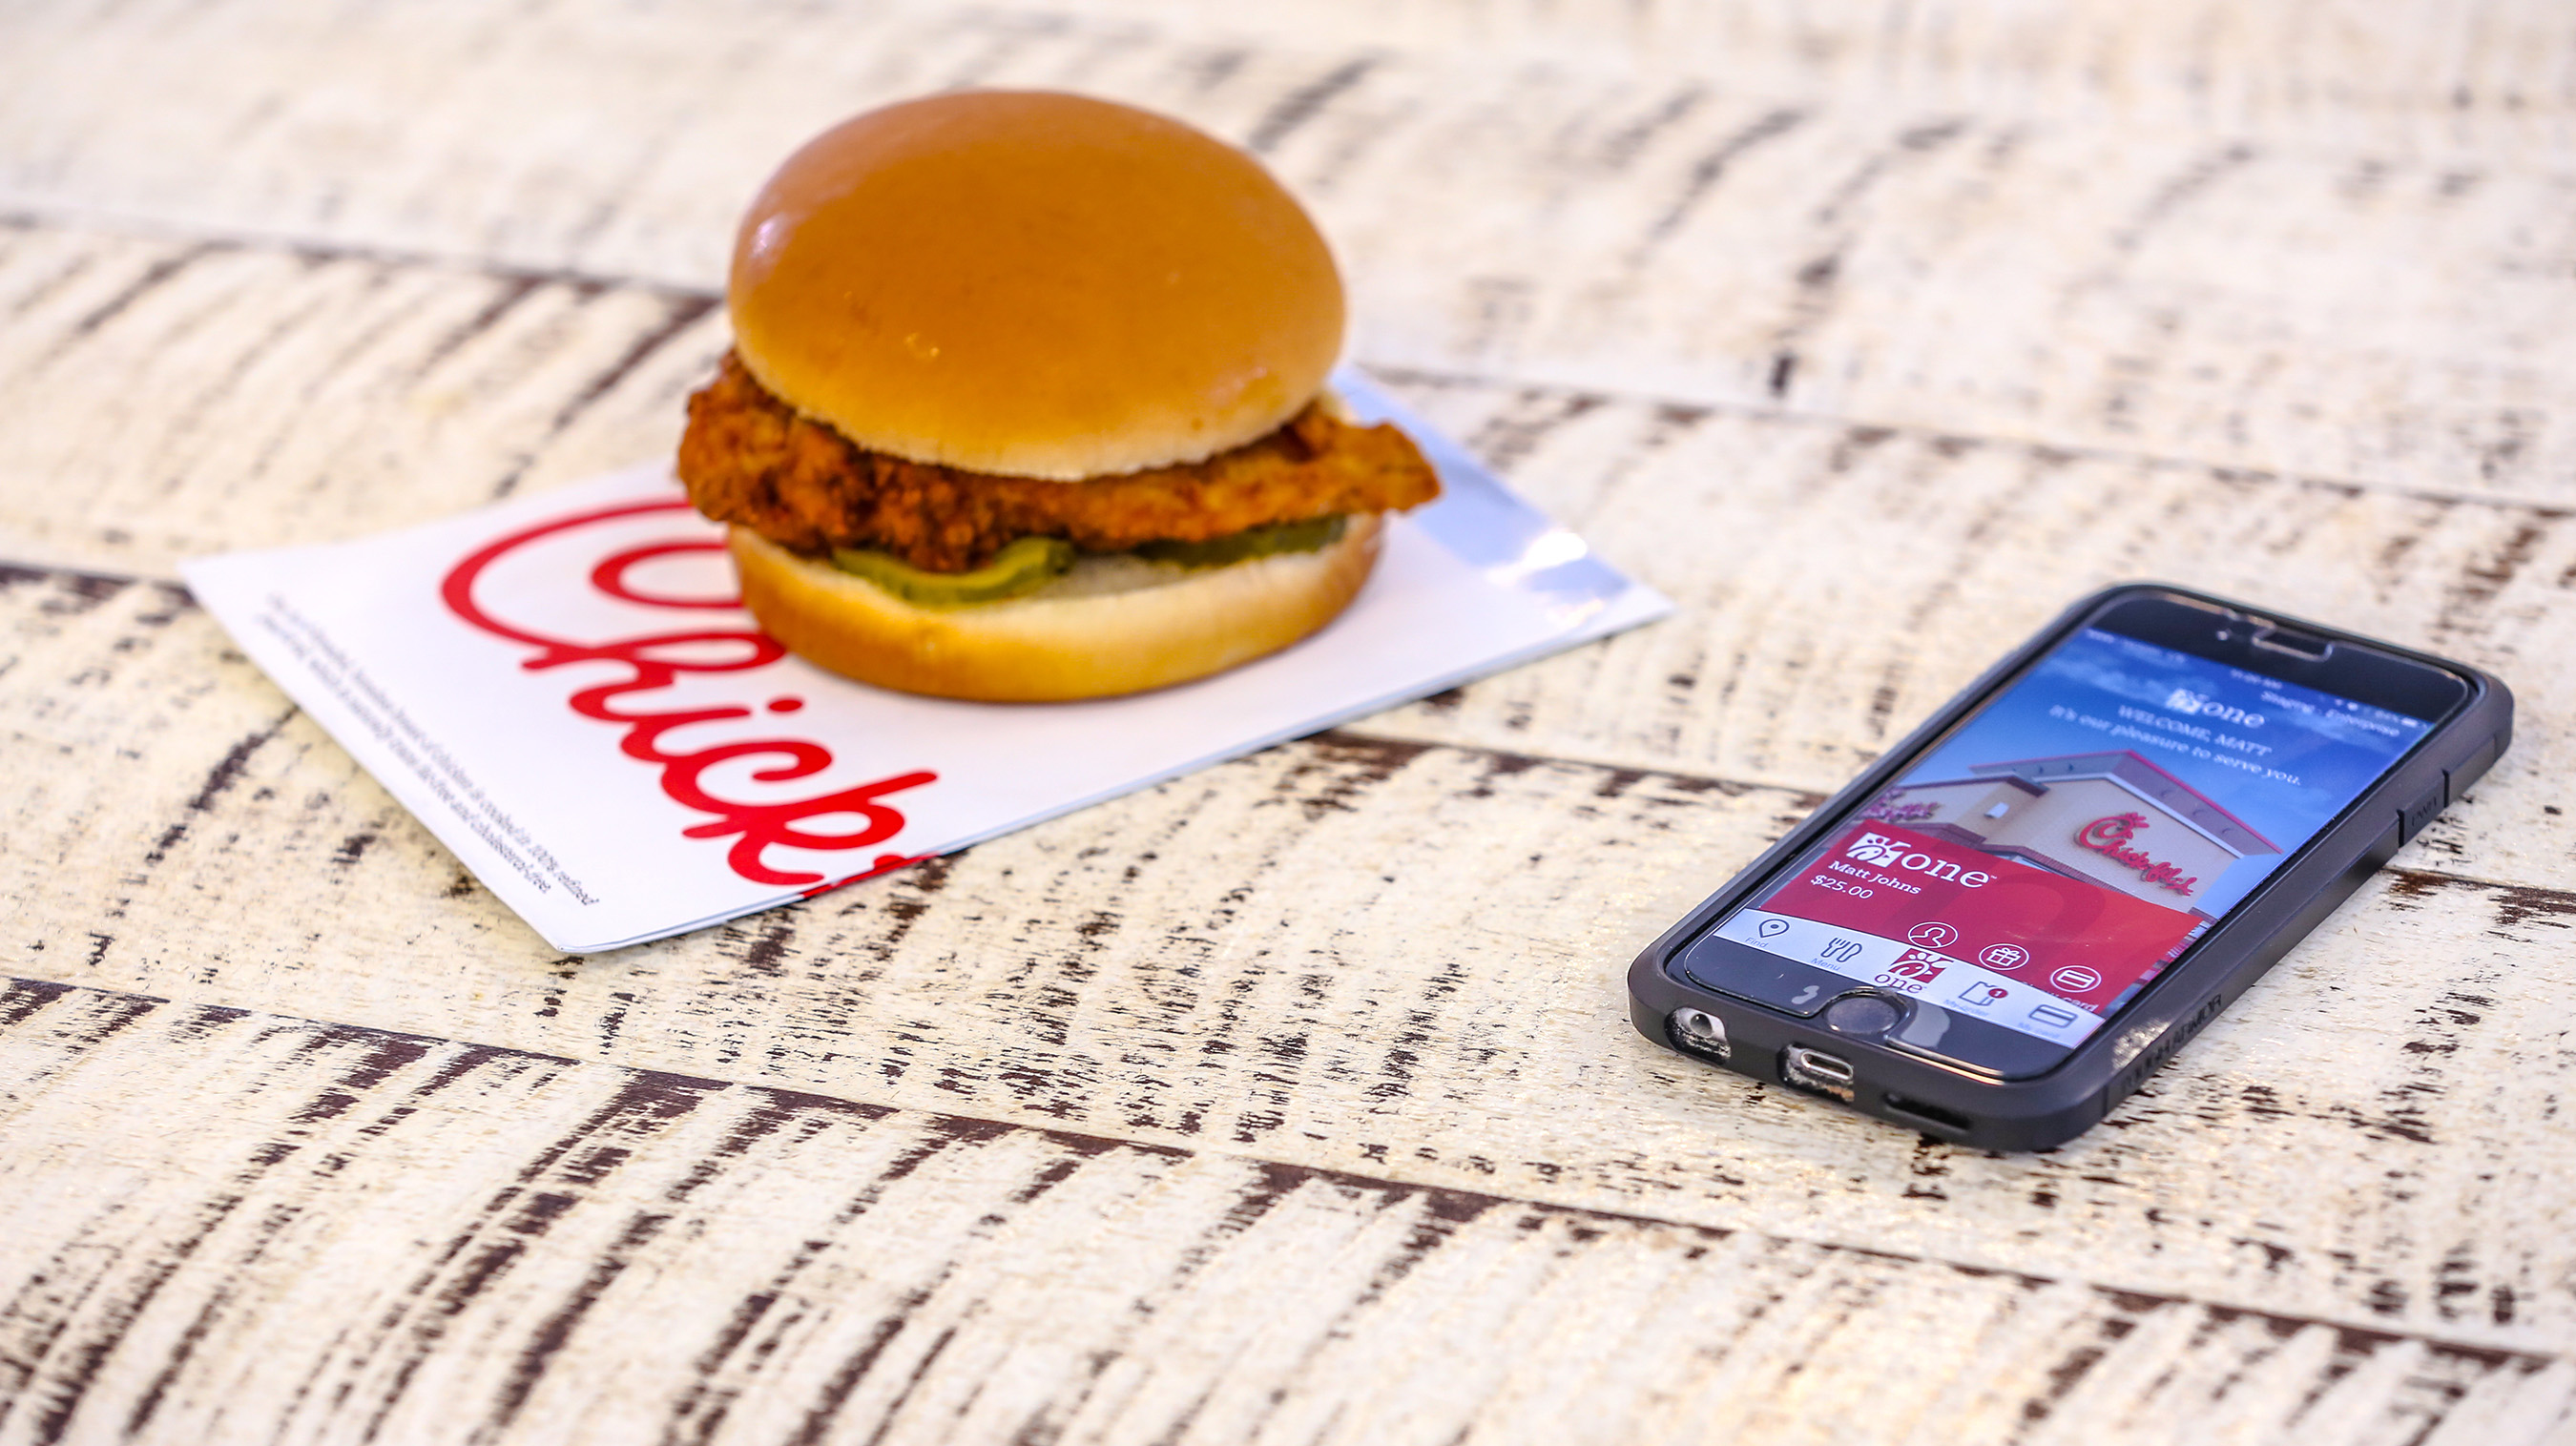 Any customer who downloads (or updates) the free app and creates a Chick-fil-A One account between June 1 and June 11 will receive an offer for a free chicken sandwich, redeemable through June 30.